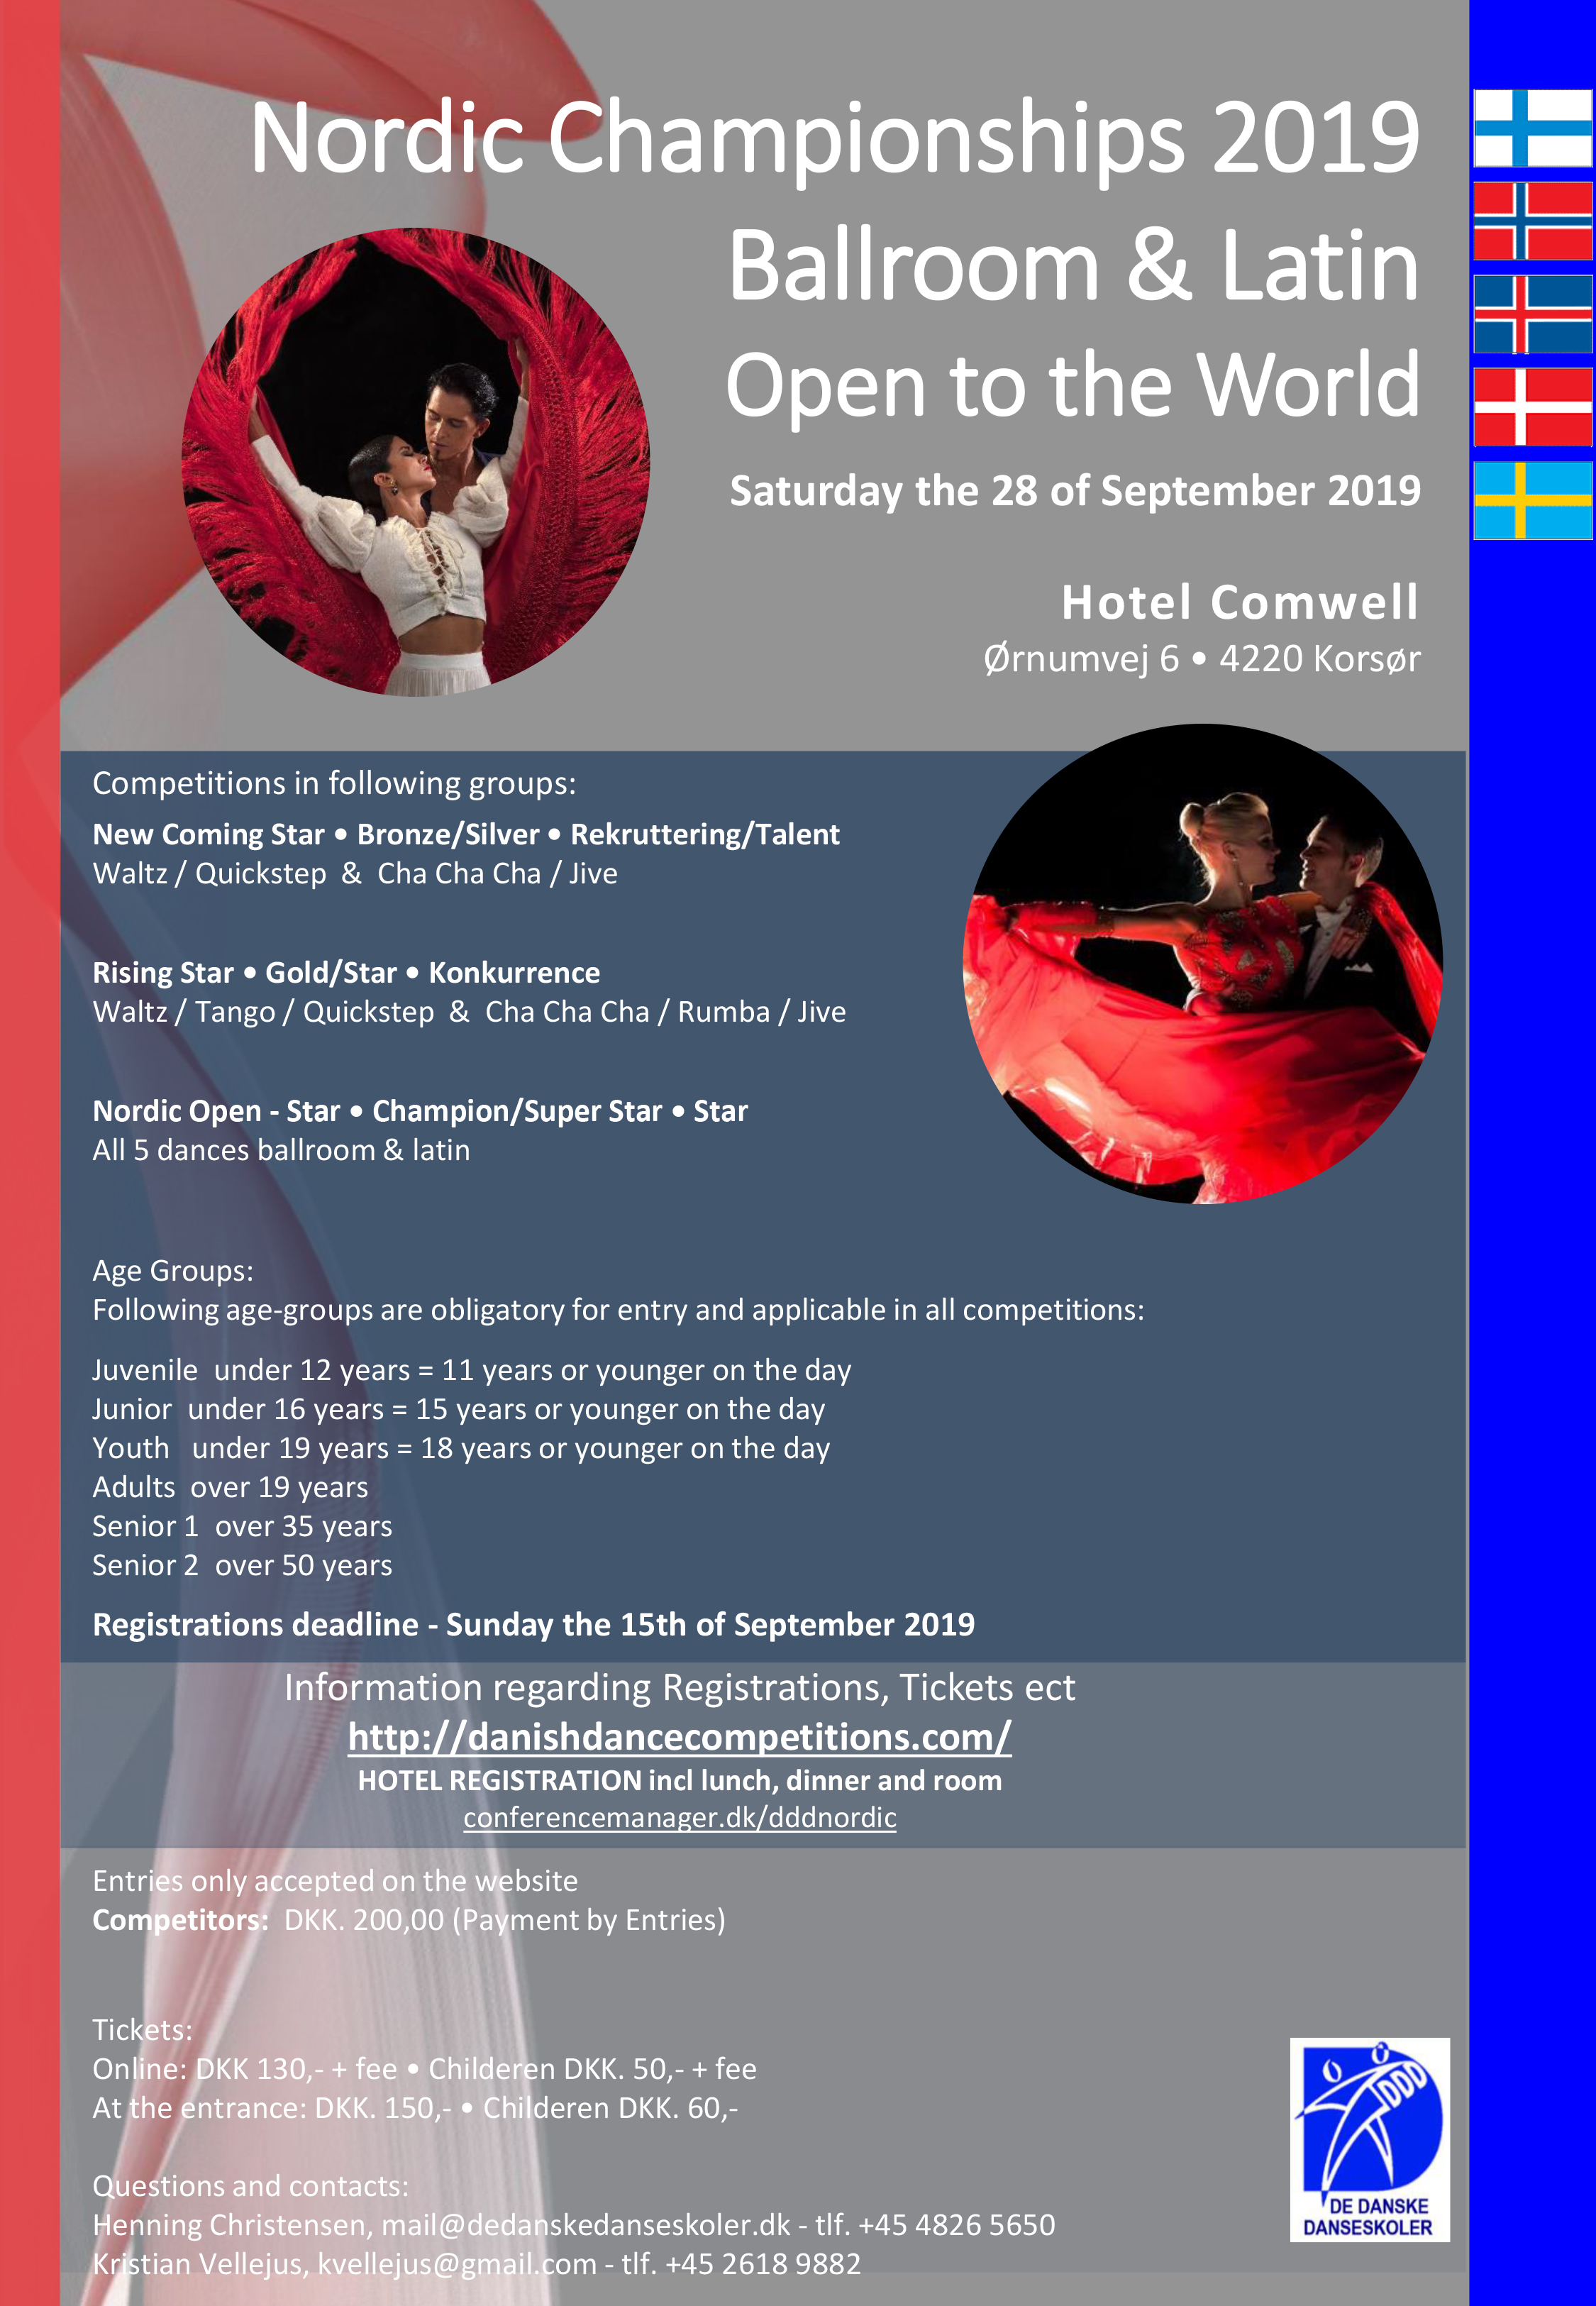 [DDD] Nordic Championships 2019 Ballroom & Latin Open to the World